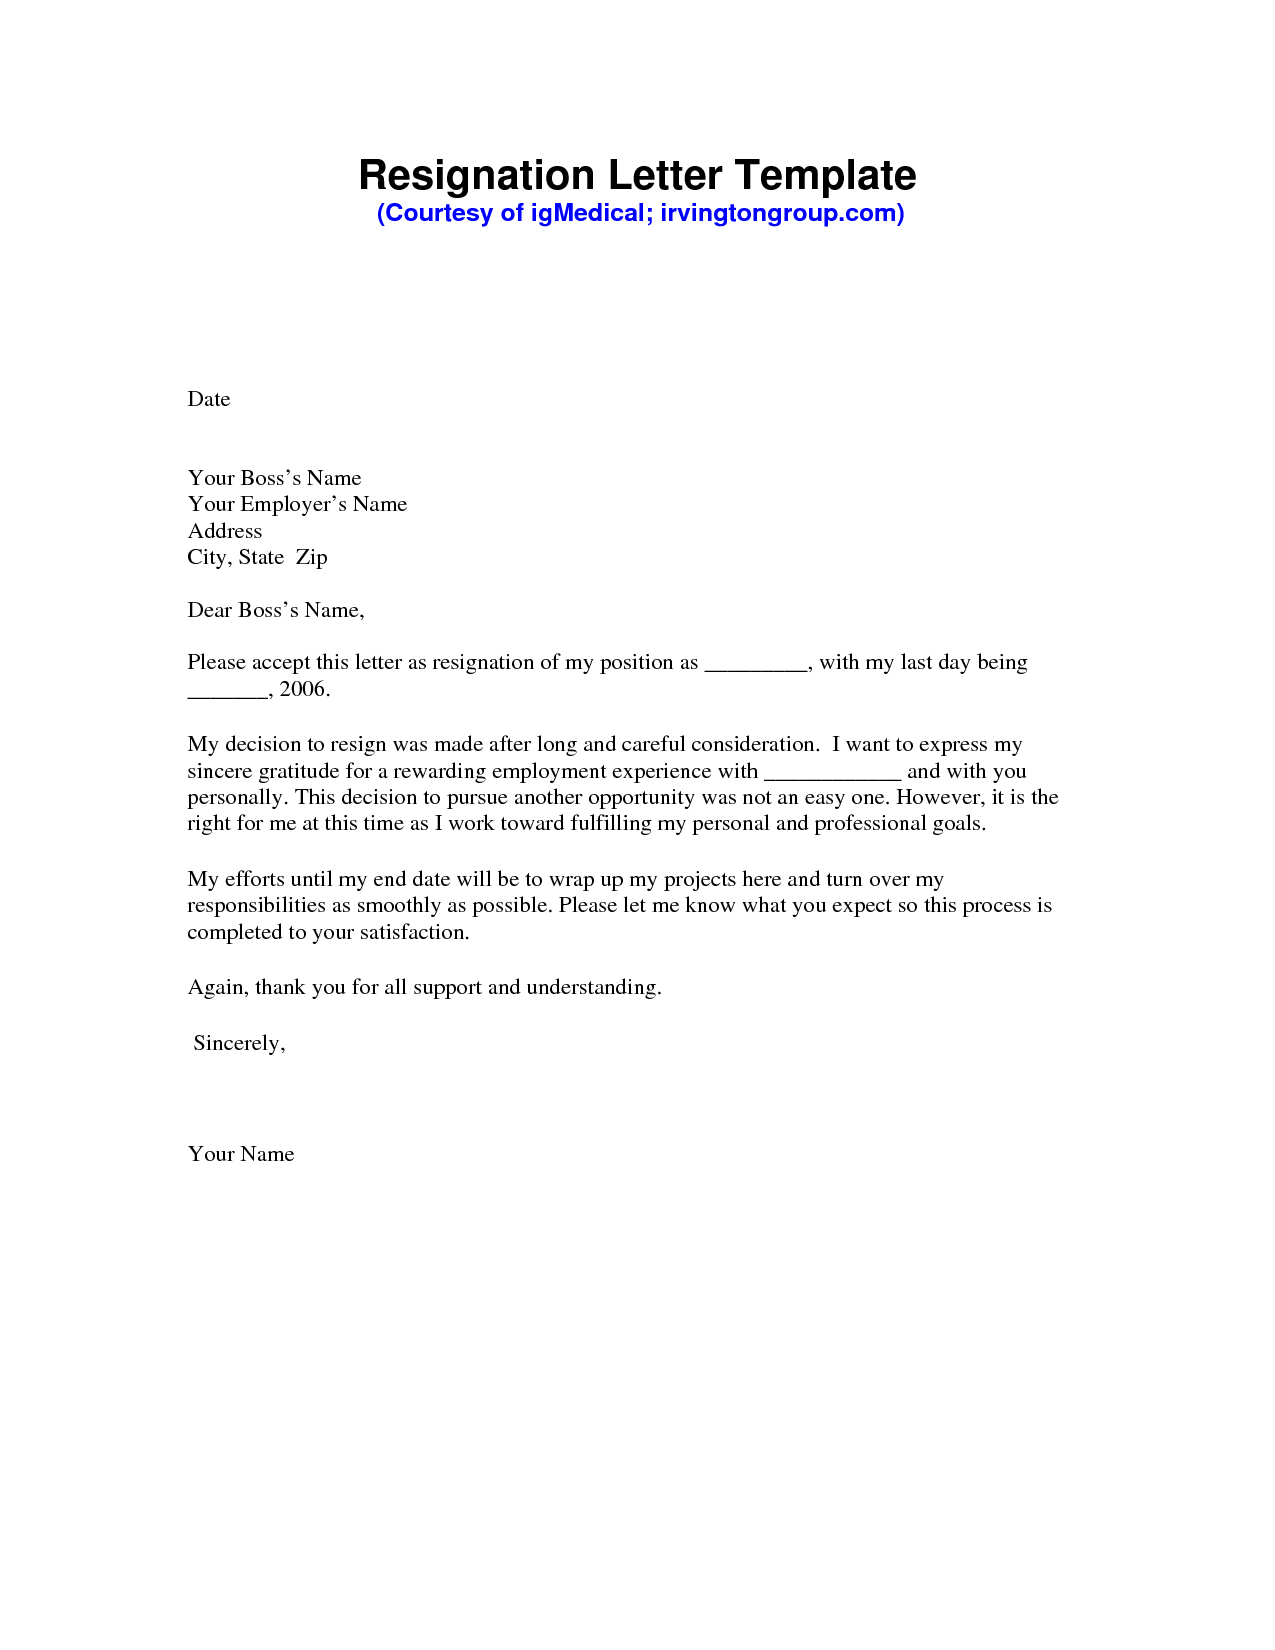 Free Resignation Letter Template Word - Resignation Letter Sample Pdf Resignation Letter